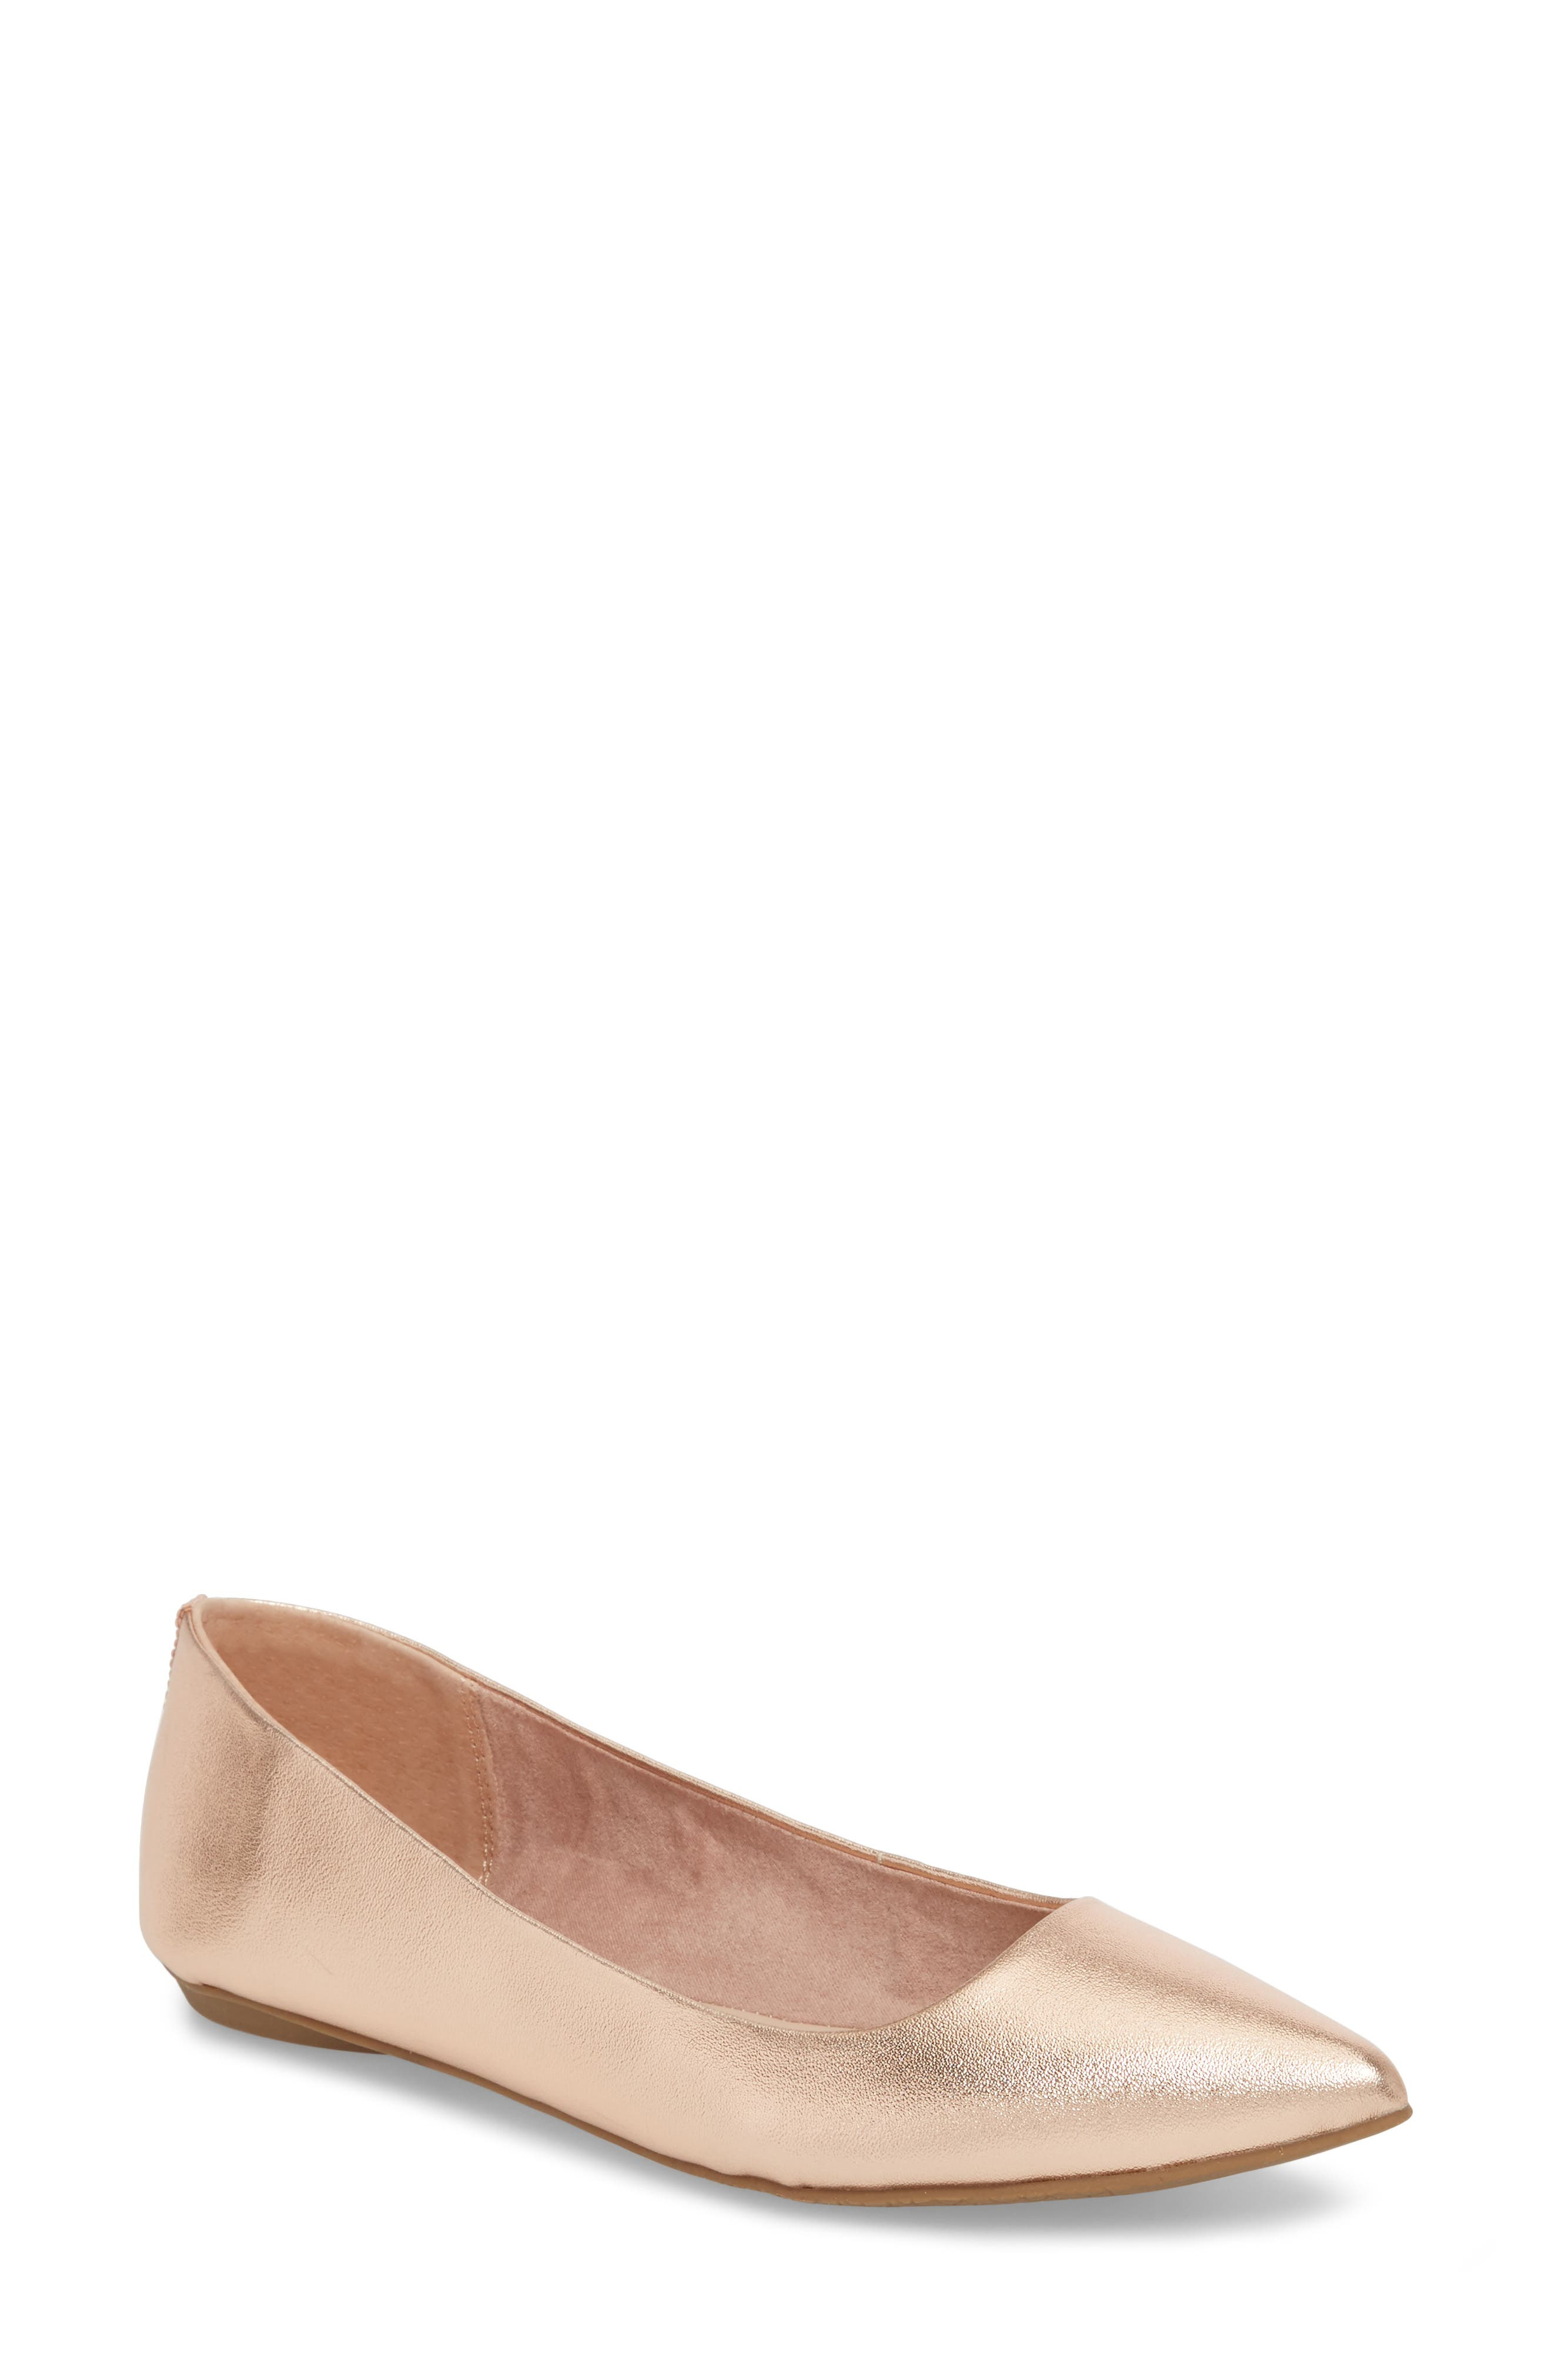 Sasha Flat,                         Main,                         color, Rose Gold Faux Leather